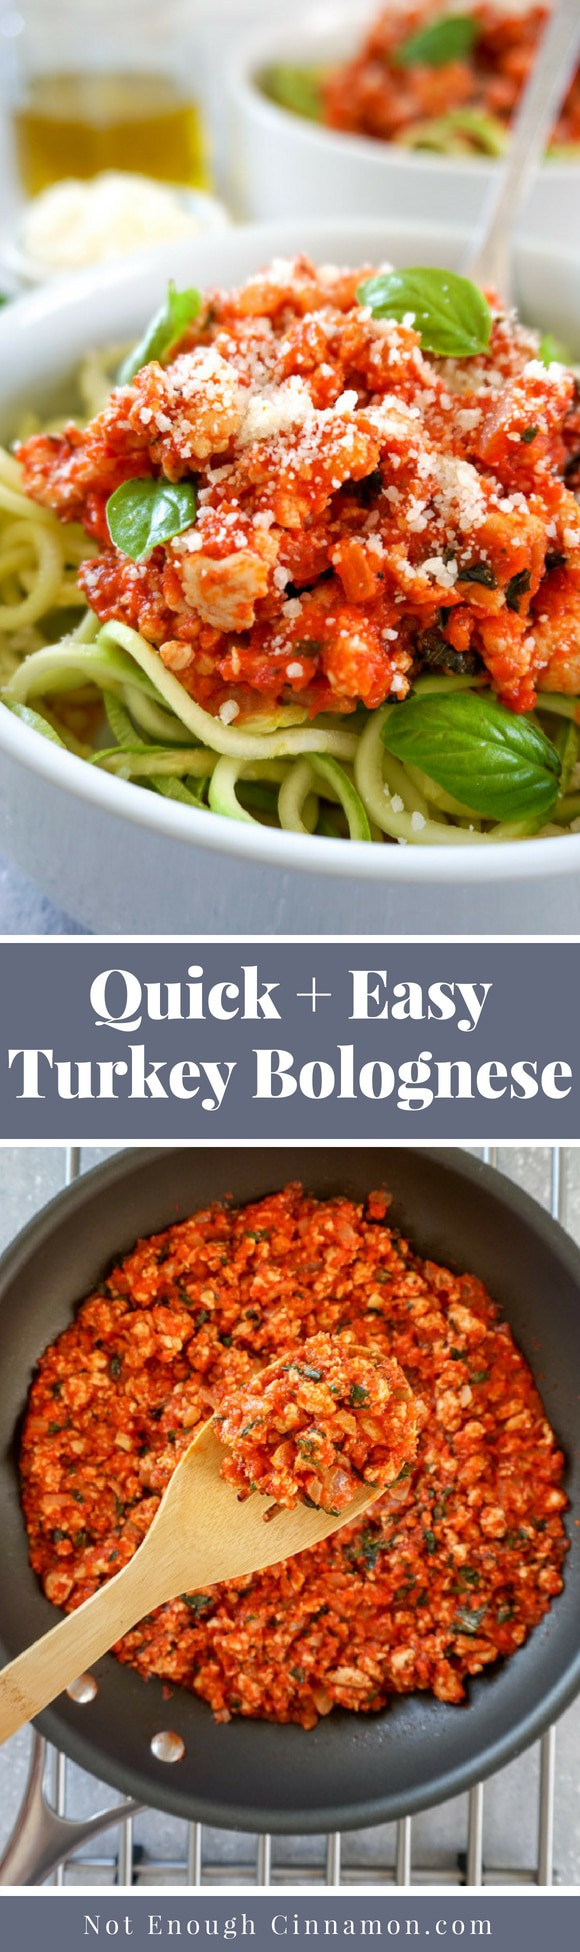 A quick and easy turkey bolognese sauce you can make in 20 minutes. Serve them with zucchini pasta for a healthy, low carb and gluten free meal #glutenfree #lowcarb #cleaneating #dinner #easyrecipe #easydinner #easyhealthydinner Recipe on NotEnoughCinnamon.com